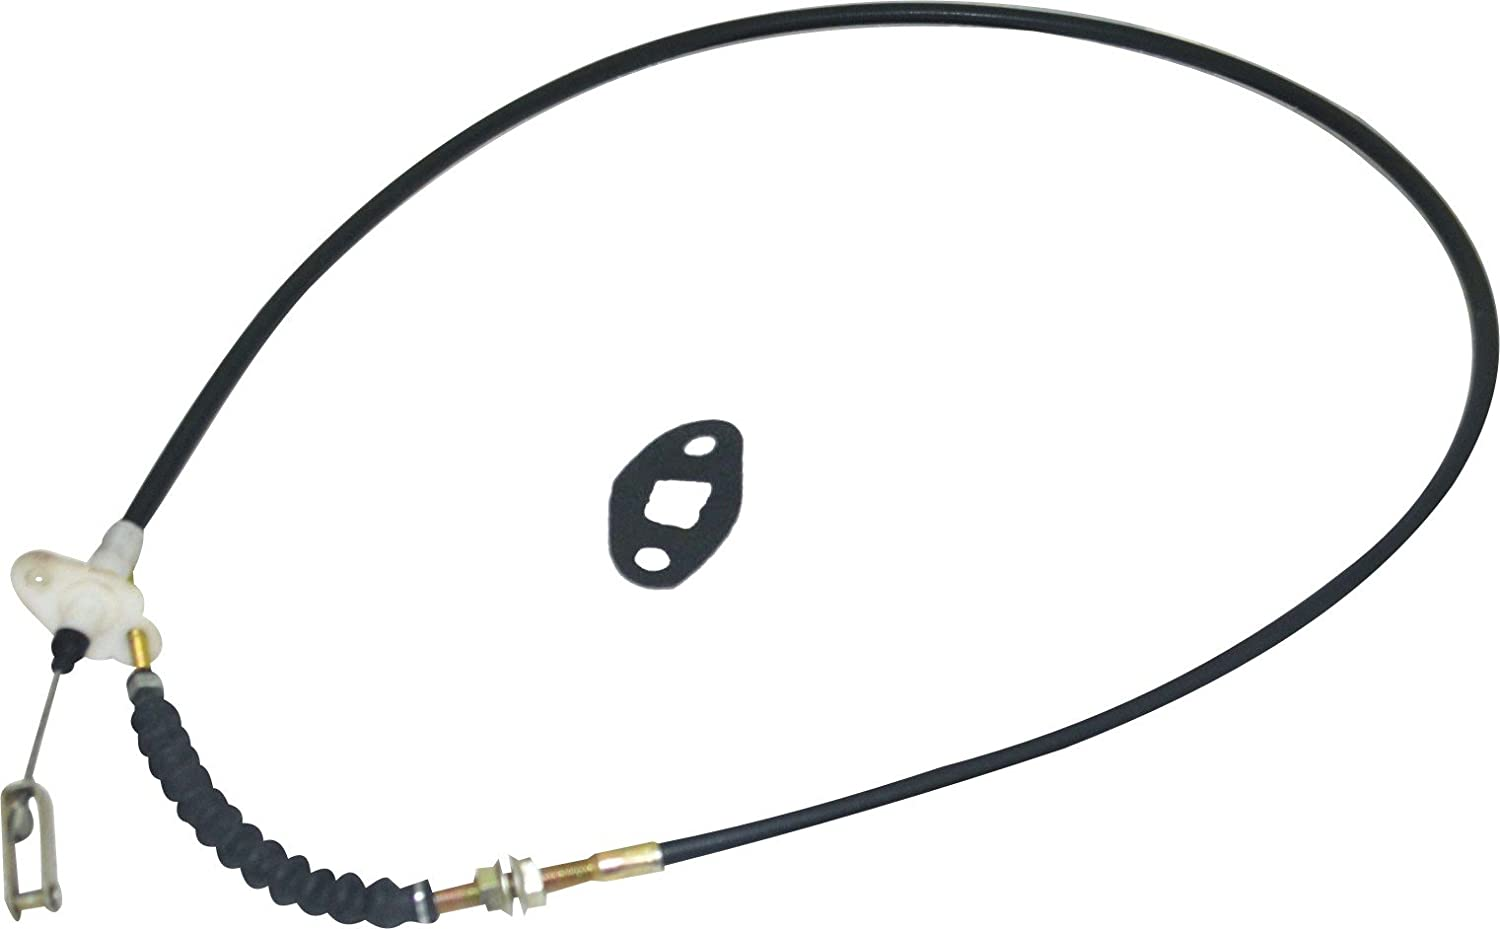 Amazon.com: SUZUKI CLUTCH CABLE SJ413 16V JIMNY SAMURAI SIERRA GYPSY DROVER JIMY MARUTI: Automotive